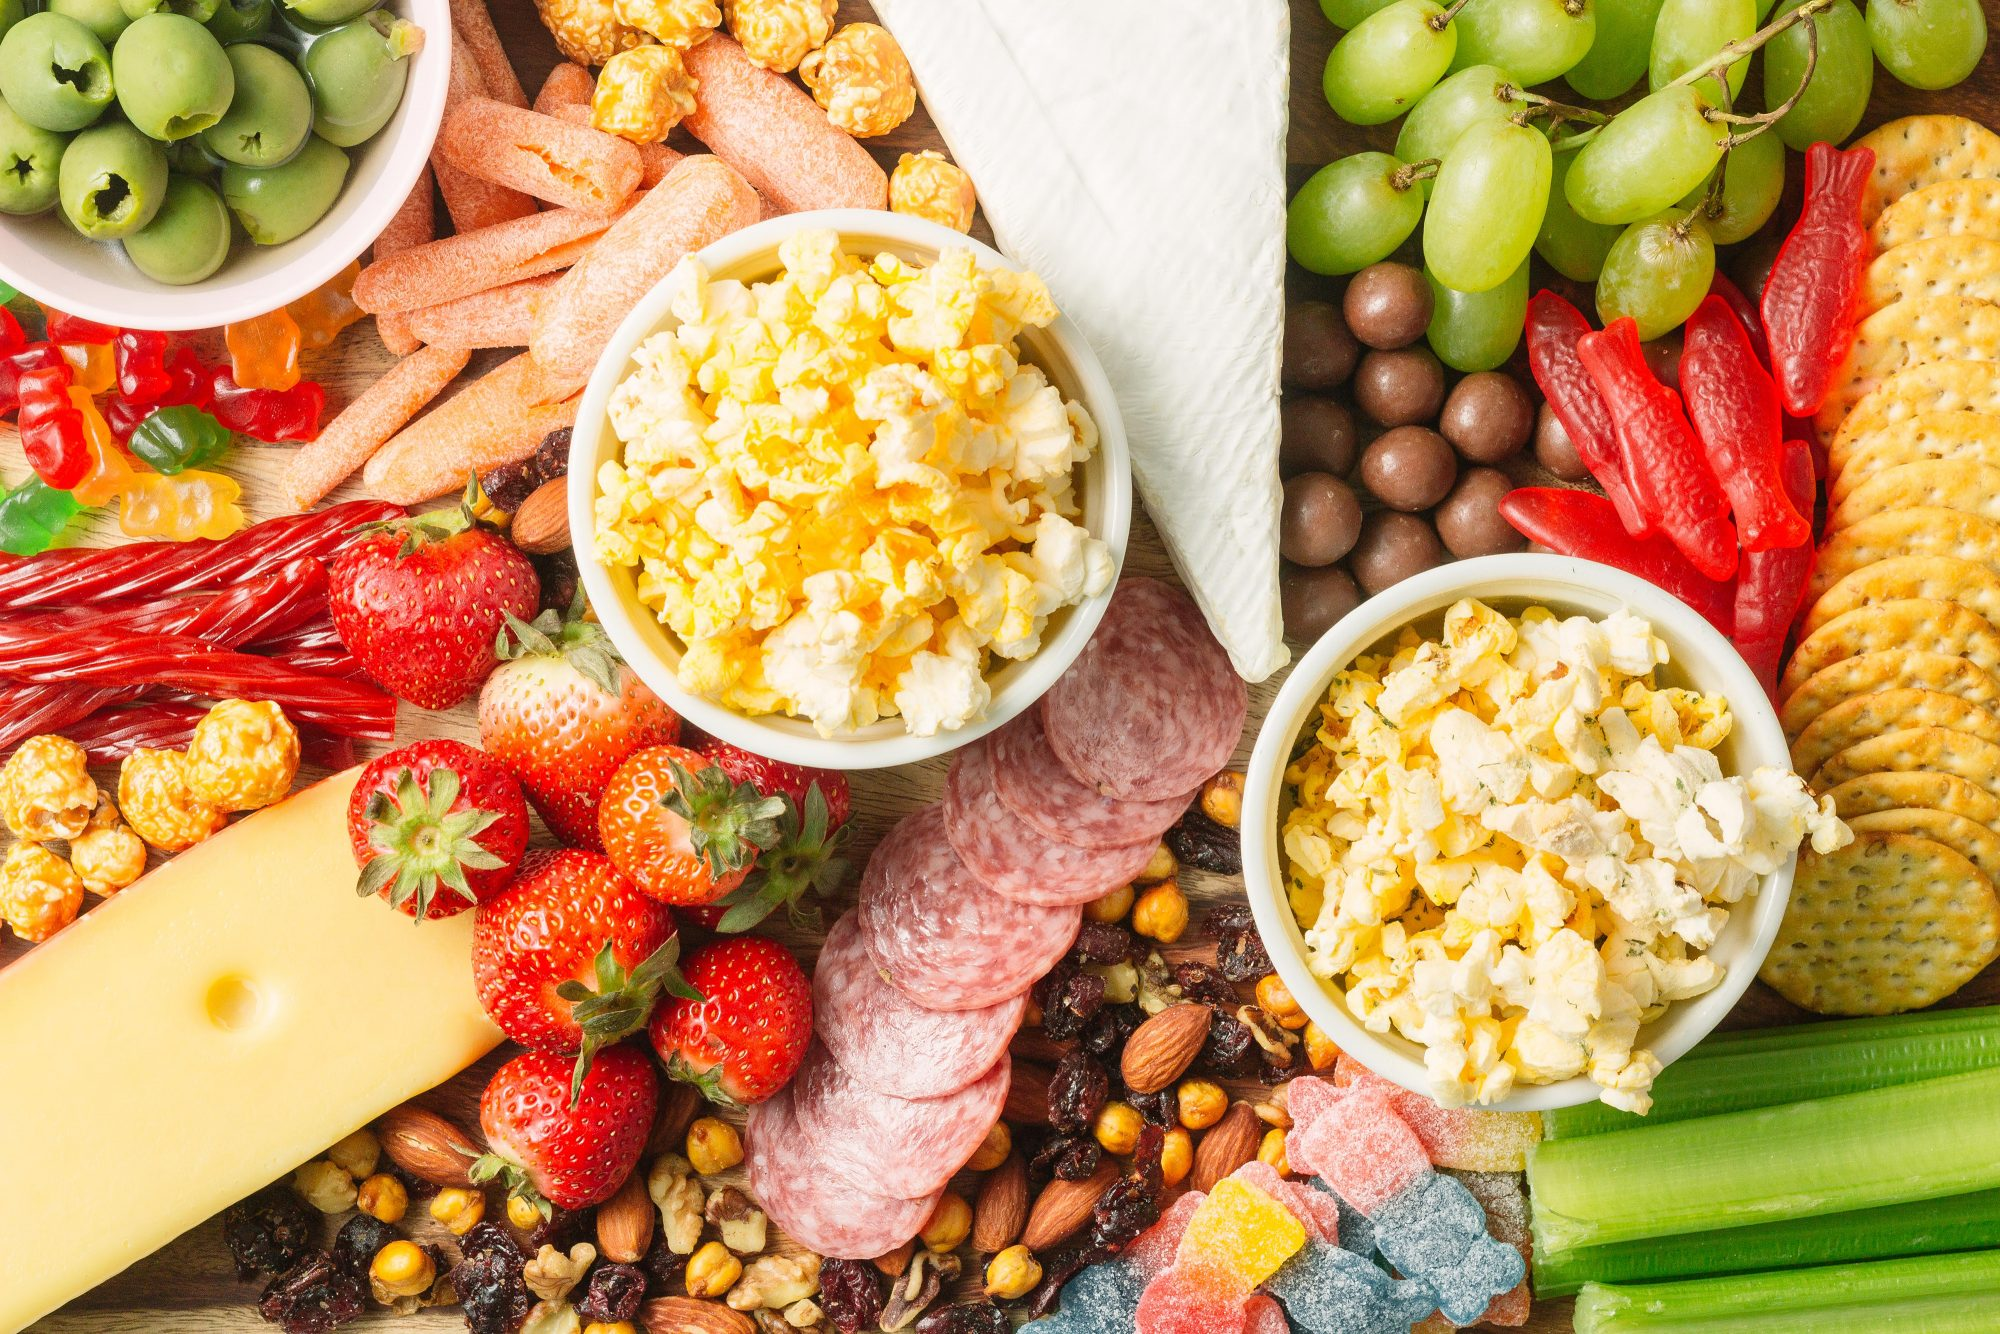 grown-up snack board with popcorn and candy